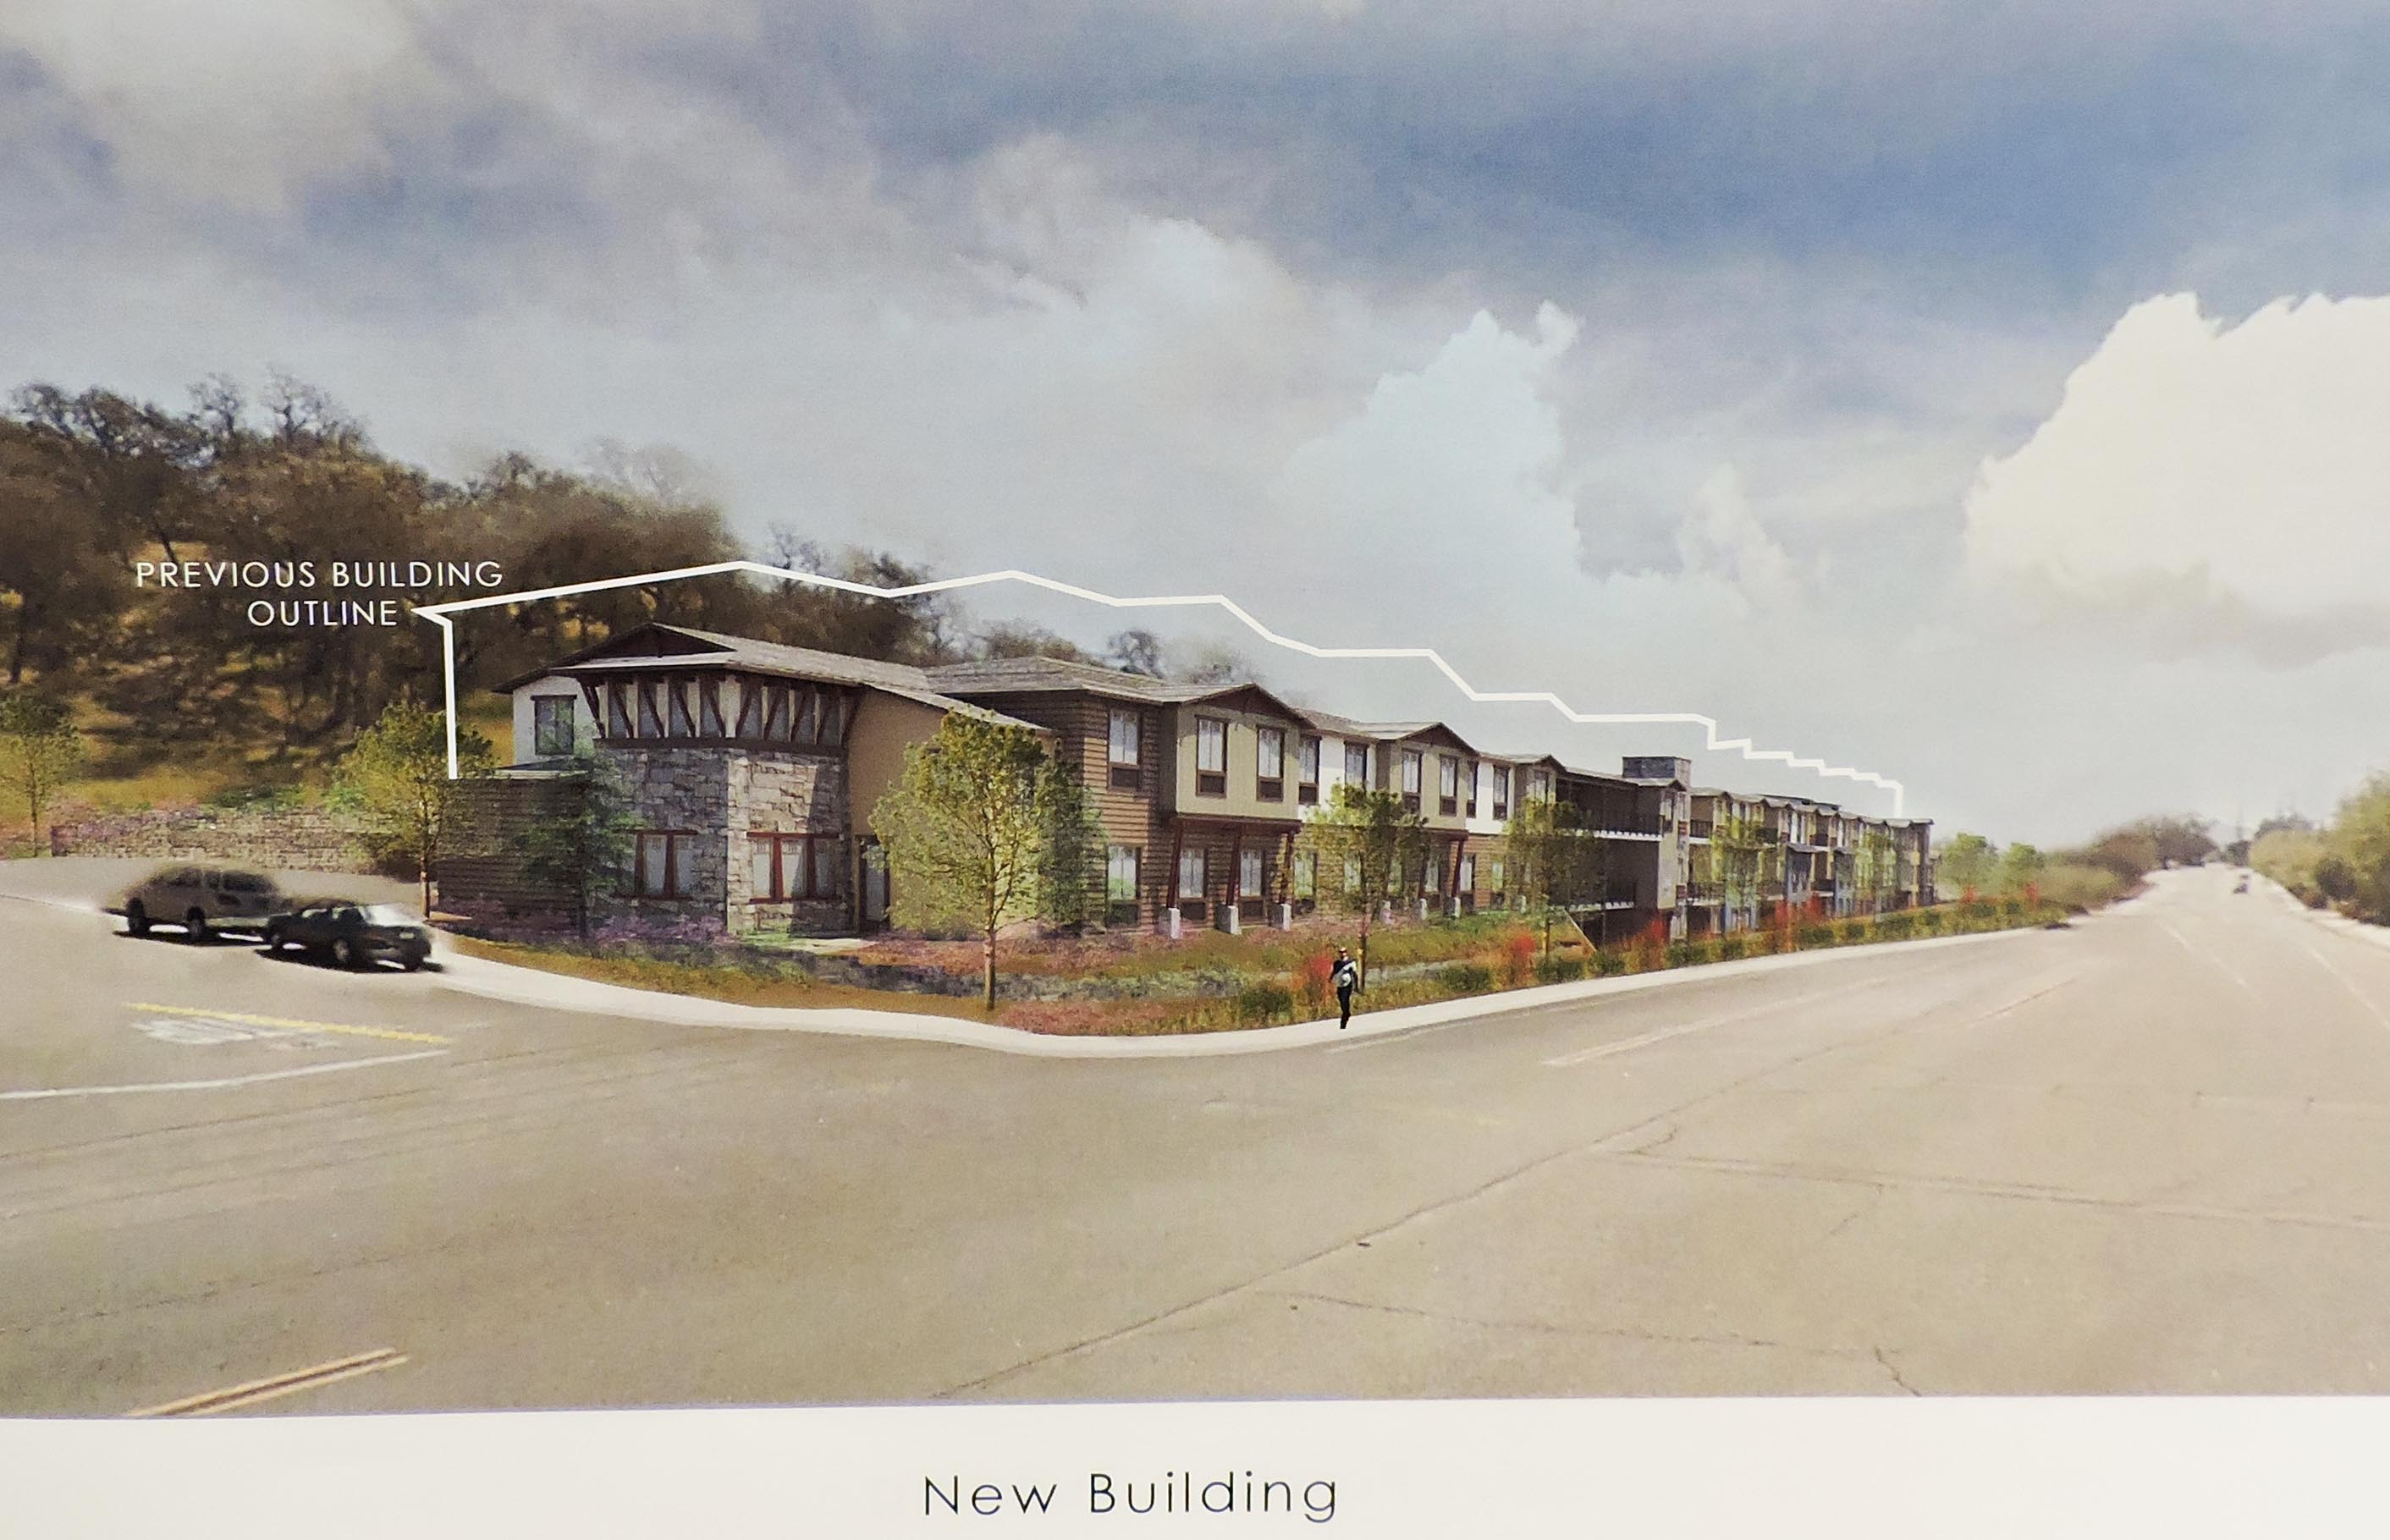 Planning Commission Approves Large Assisted Living